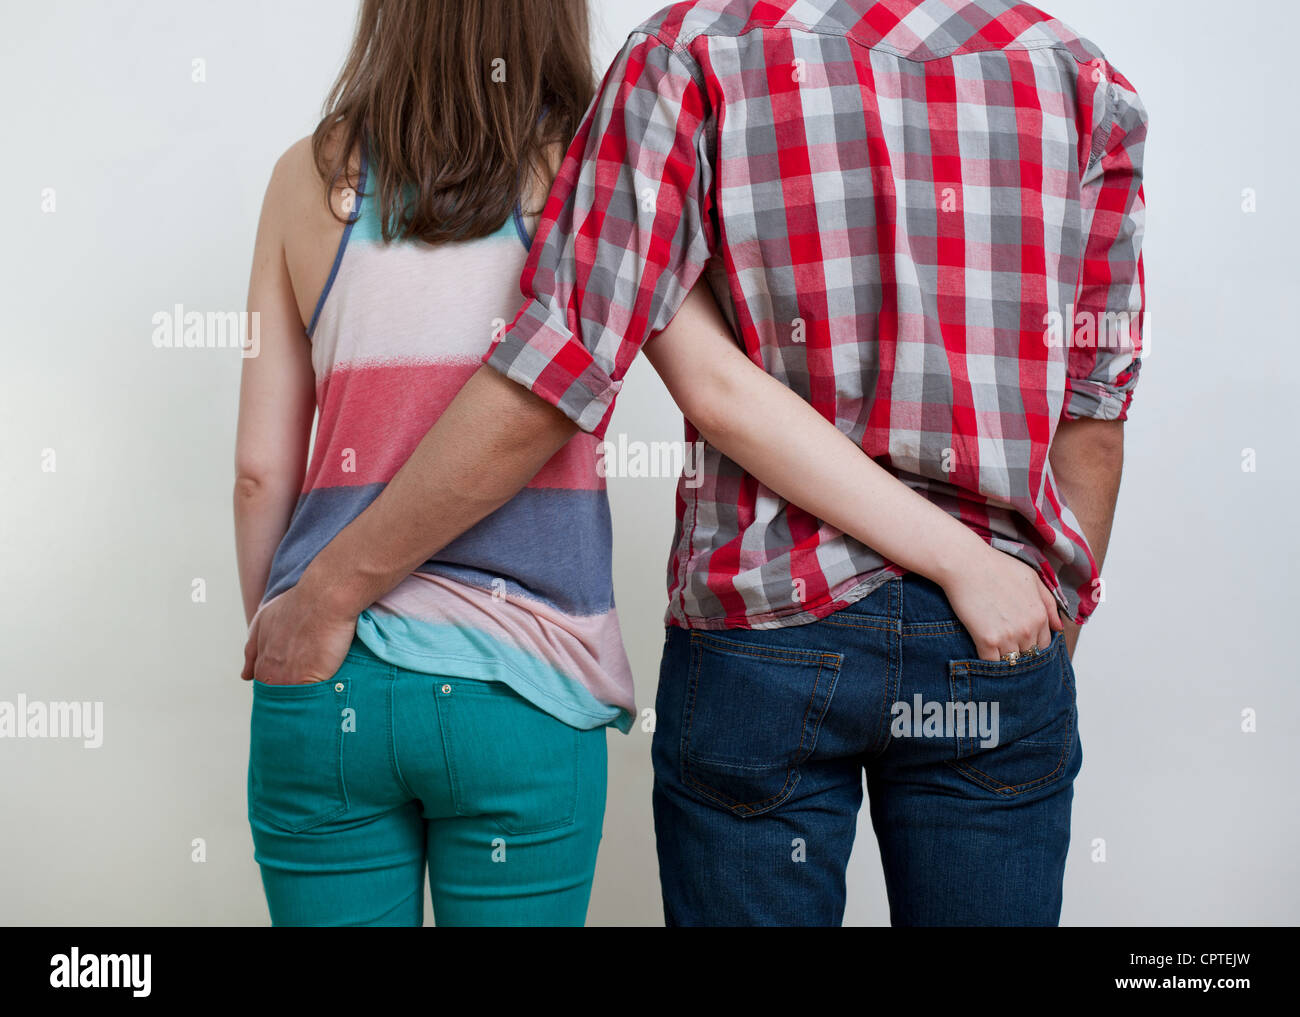 Young couple with hands in each other's back pockets - Stock Image